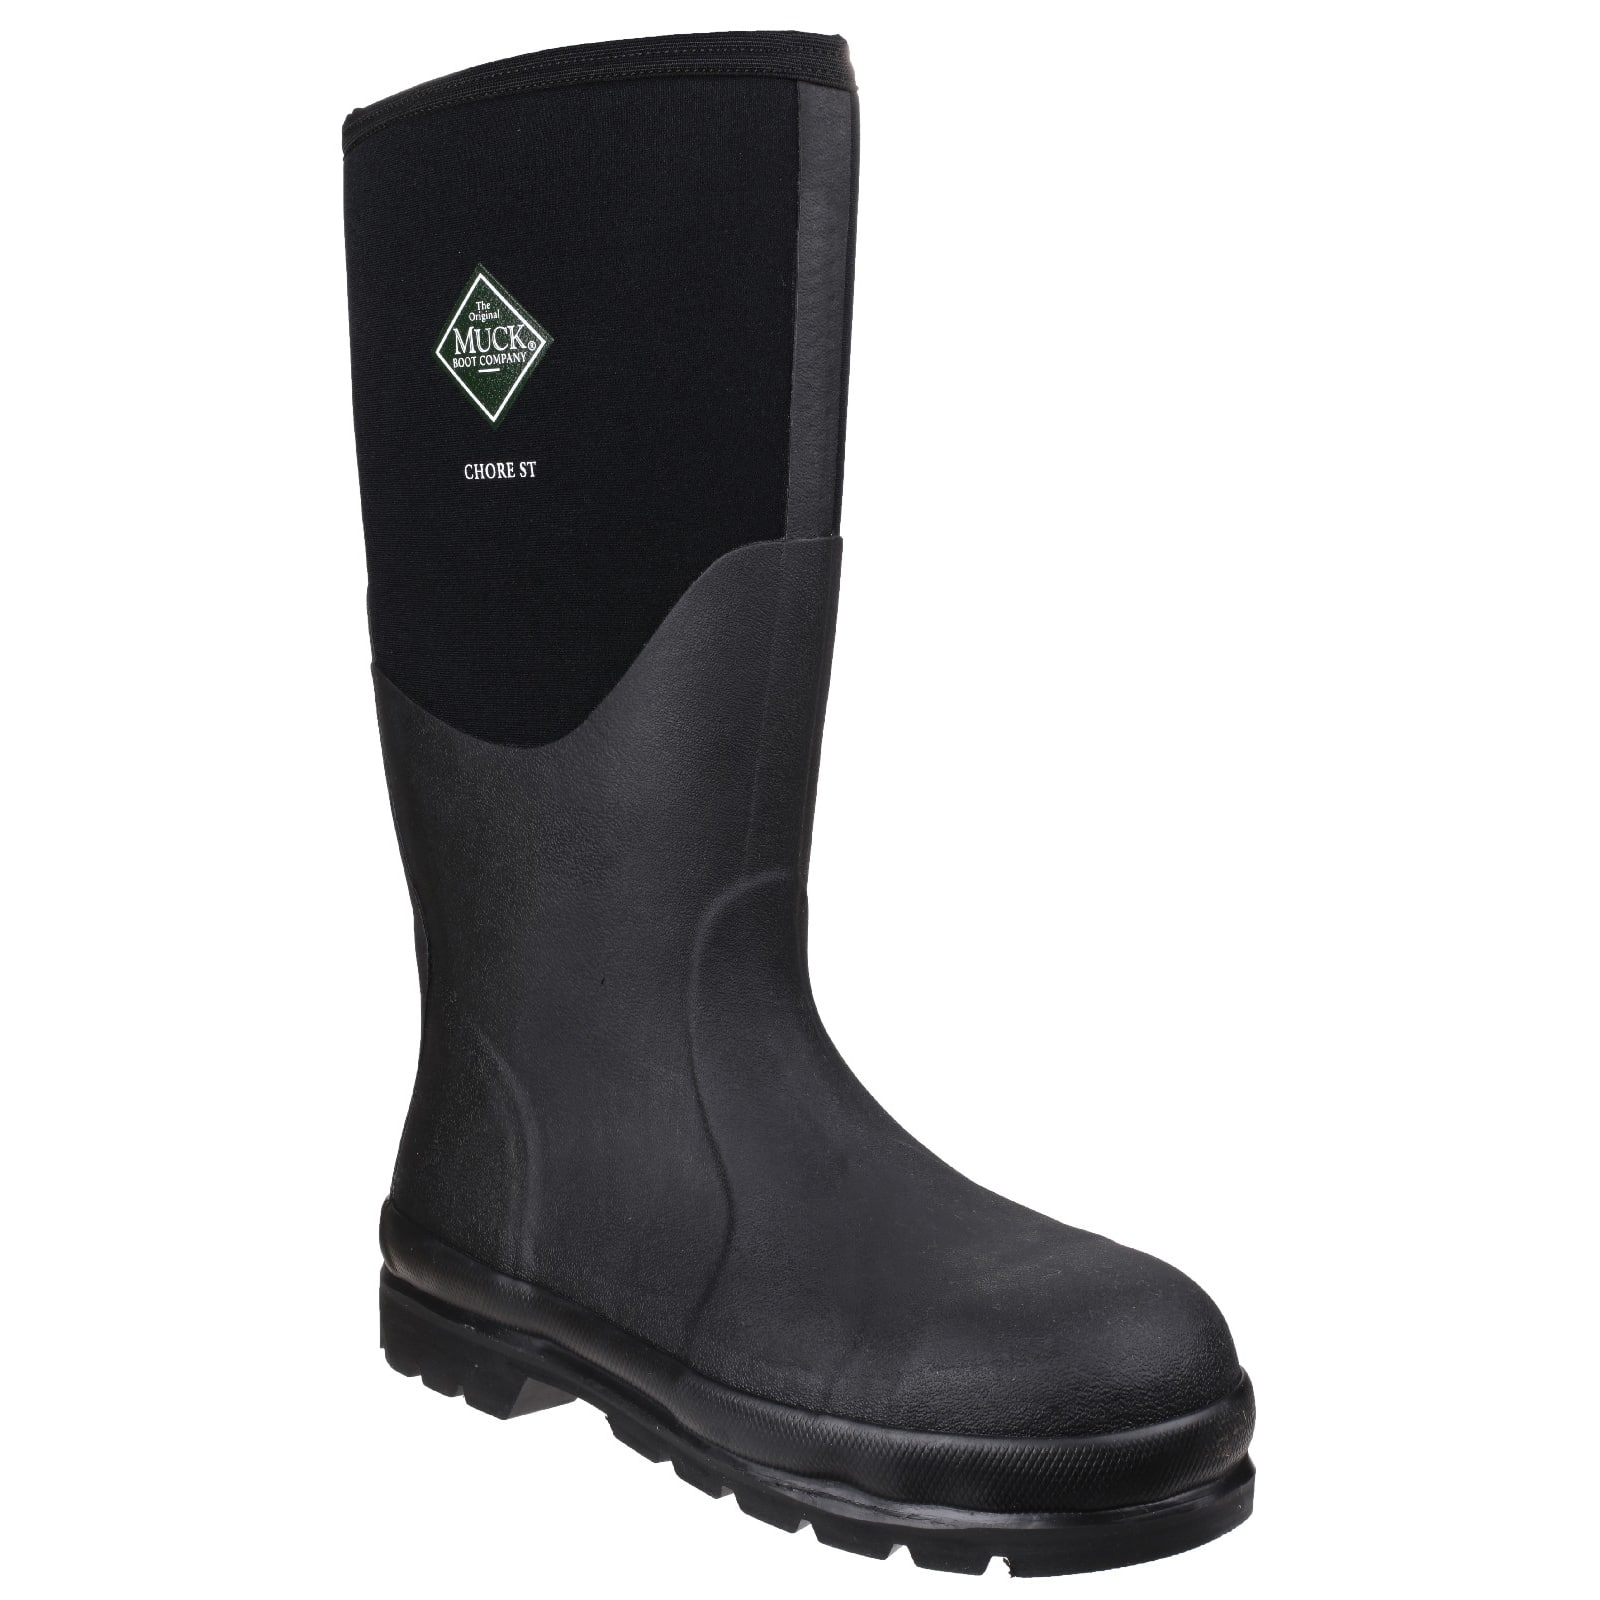 9840a28bcce Muck Chore Classic Safety, Unisex Full Welly in Black